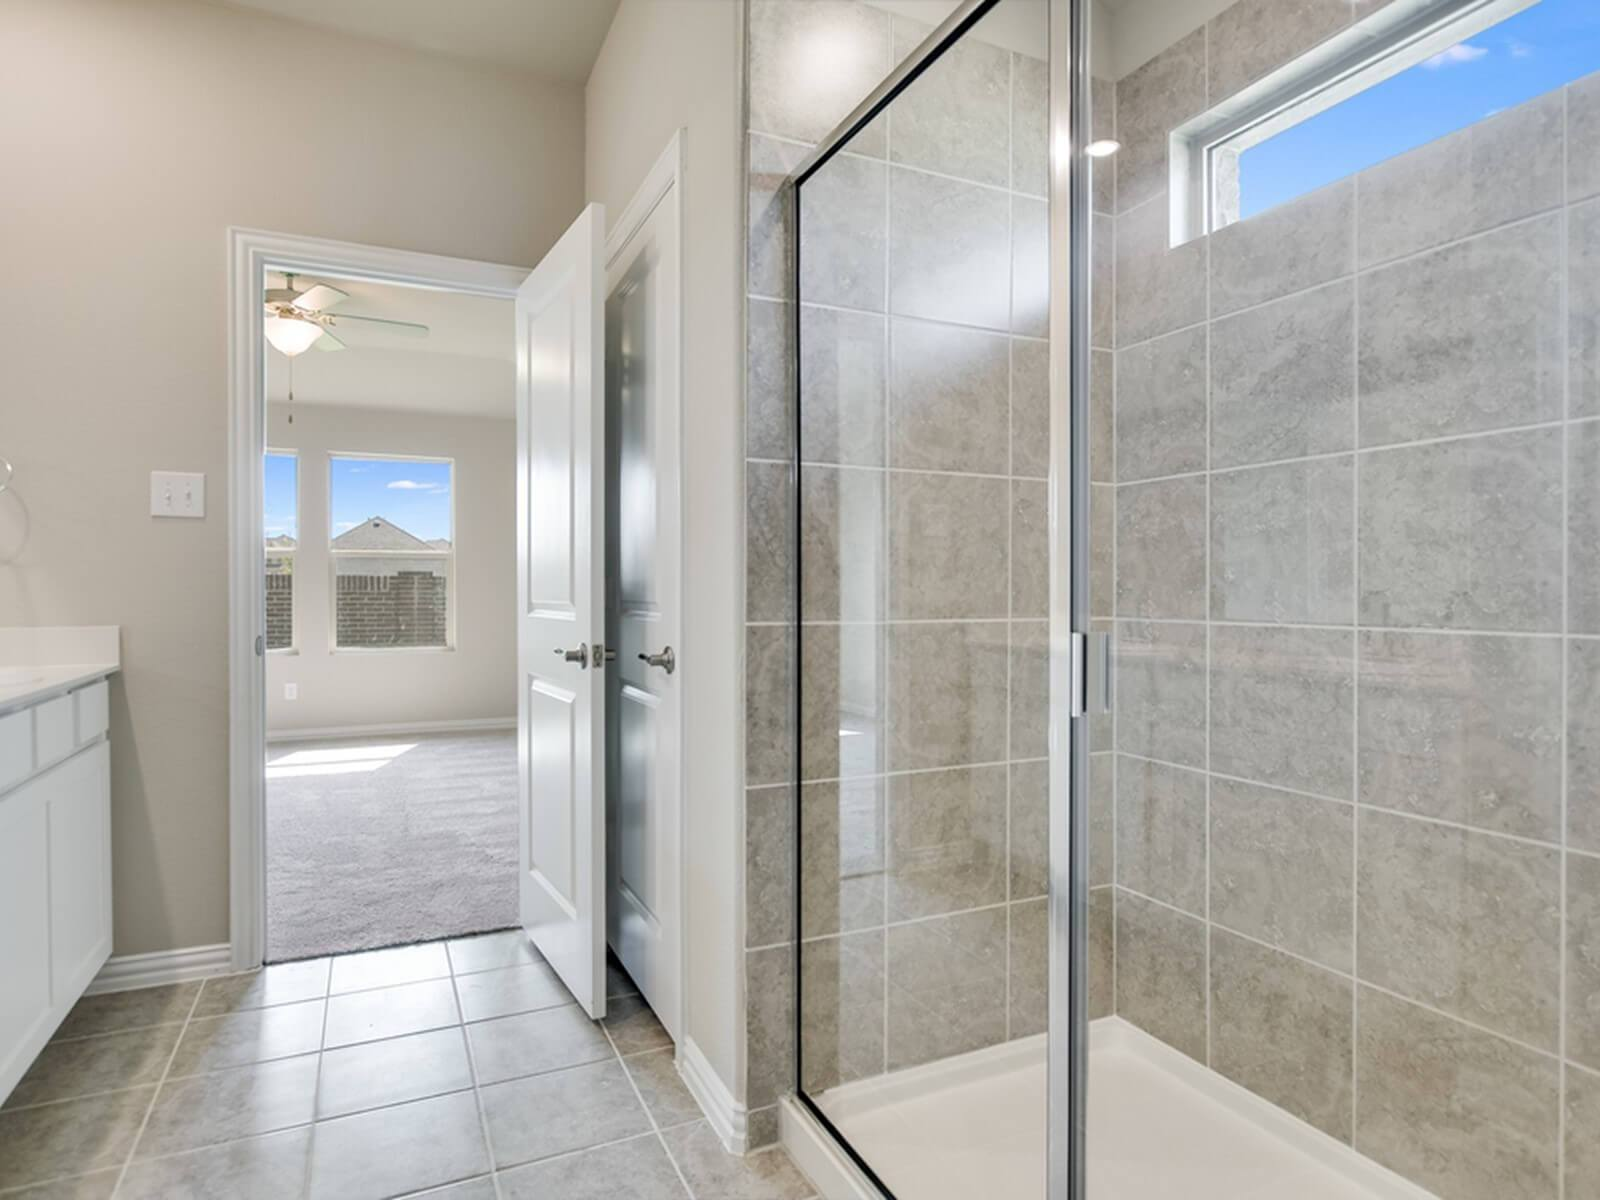 Bathroom featured in The Greenville By Meritage Homes in Dallas, TX